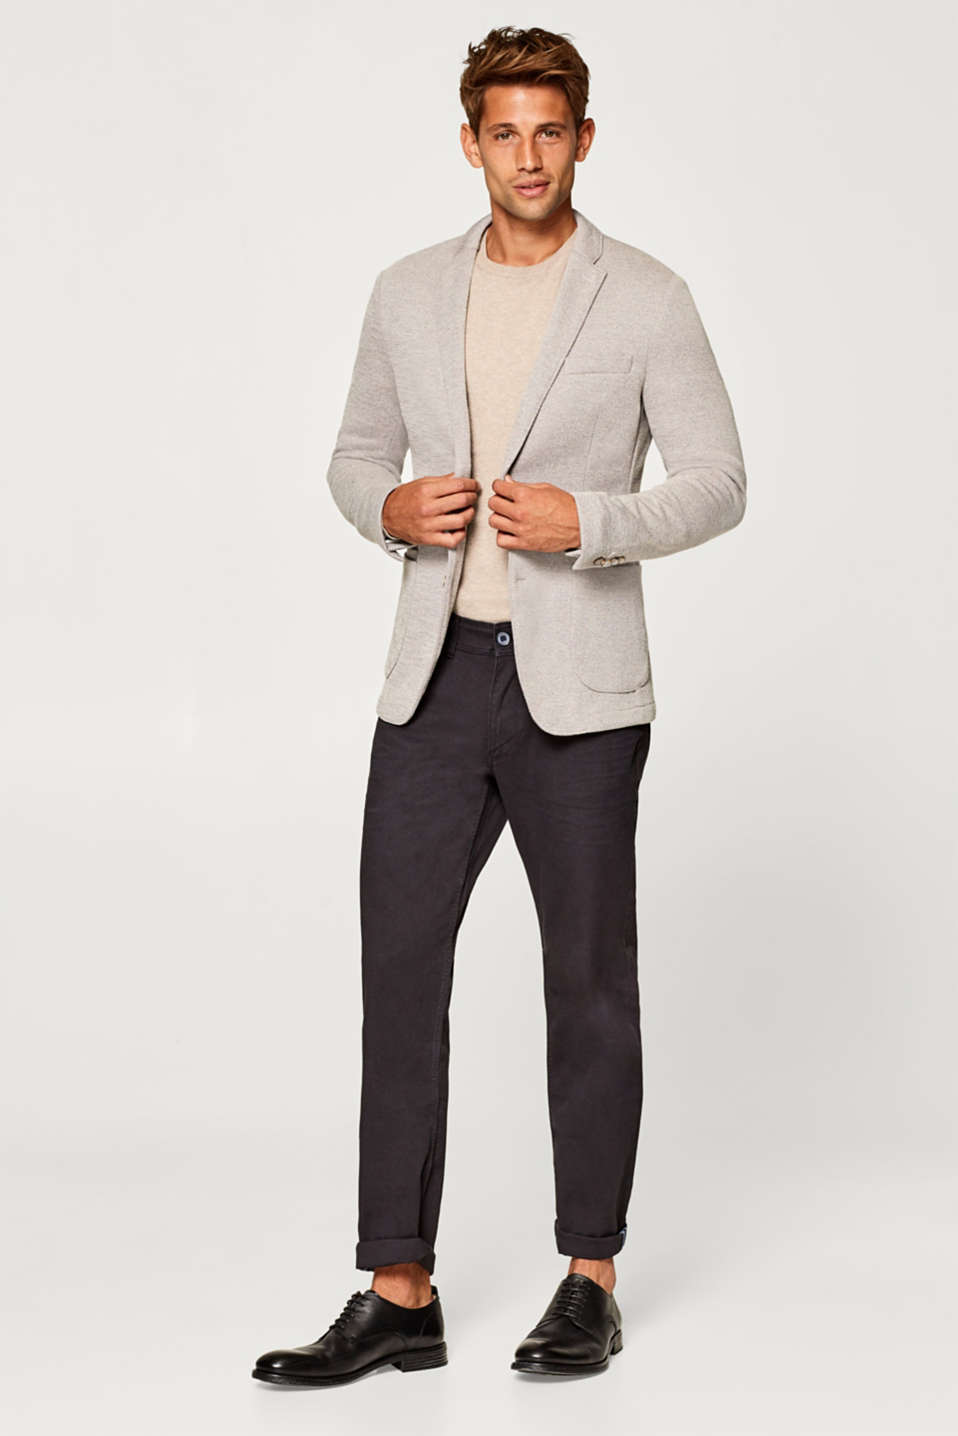 Men's blazer in textured jersey